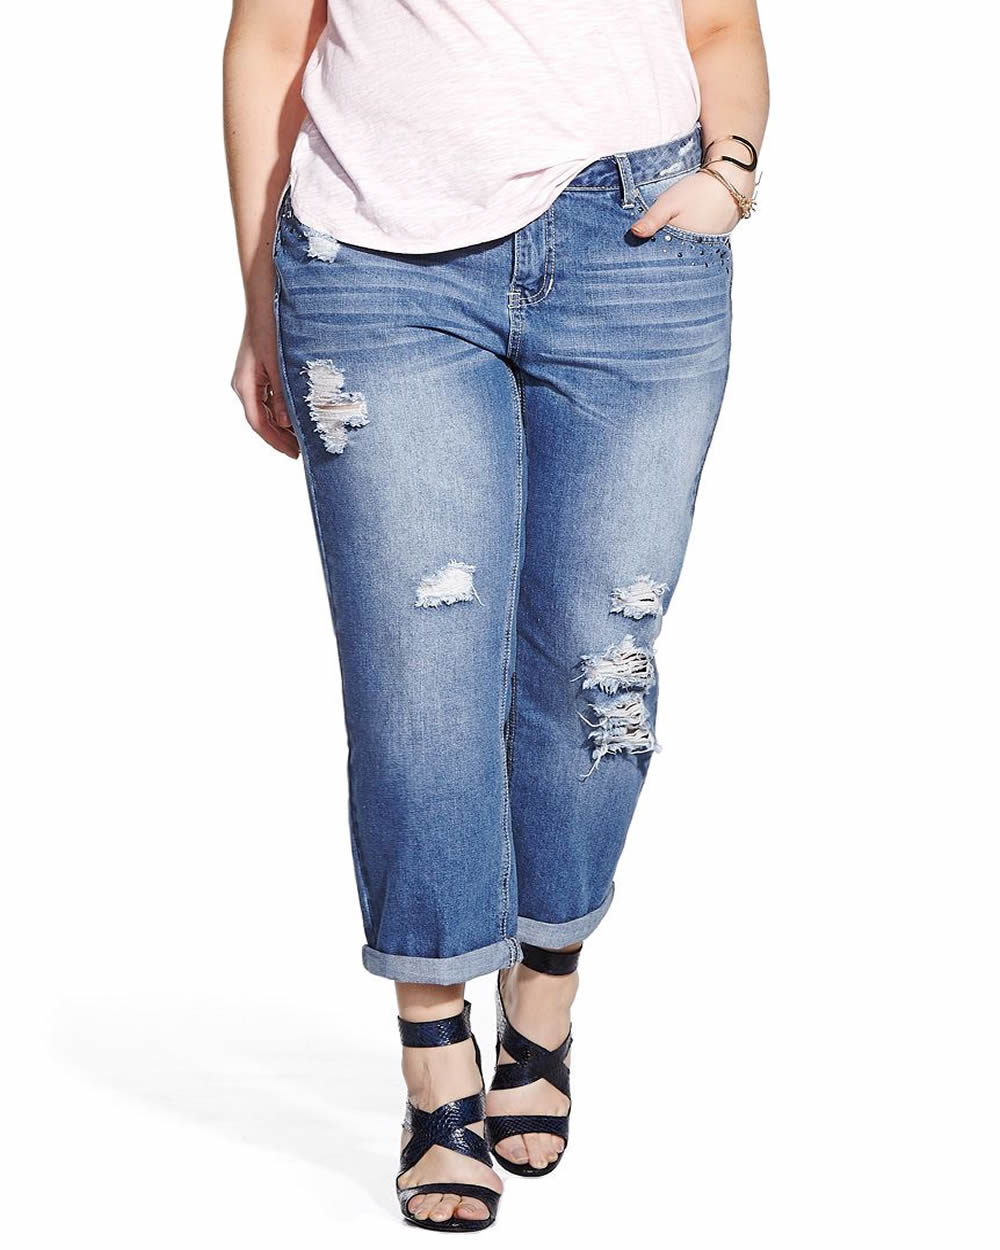 Find Trendy Plus Size Boyfriend Jeans from maurices At maurices we pride ourselves in having the best jeans for all shapes and sizes, especially for plus size women. maurices jeans are extraordinarily comfortable and flattering in every way.